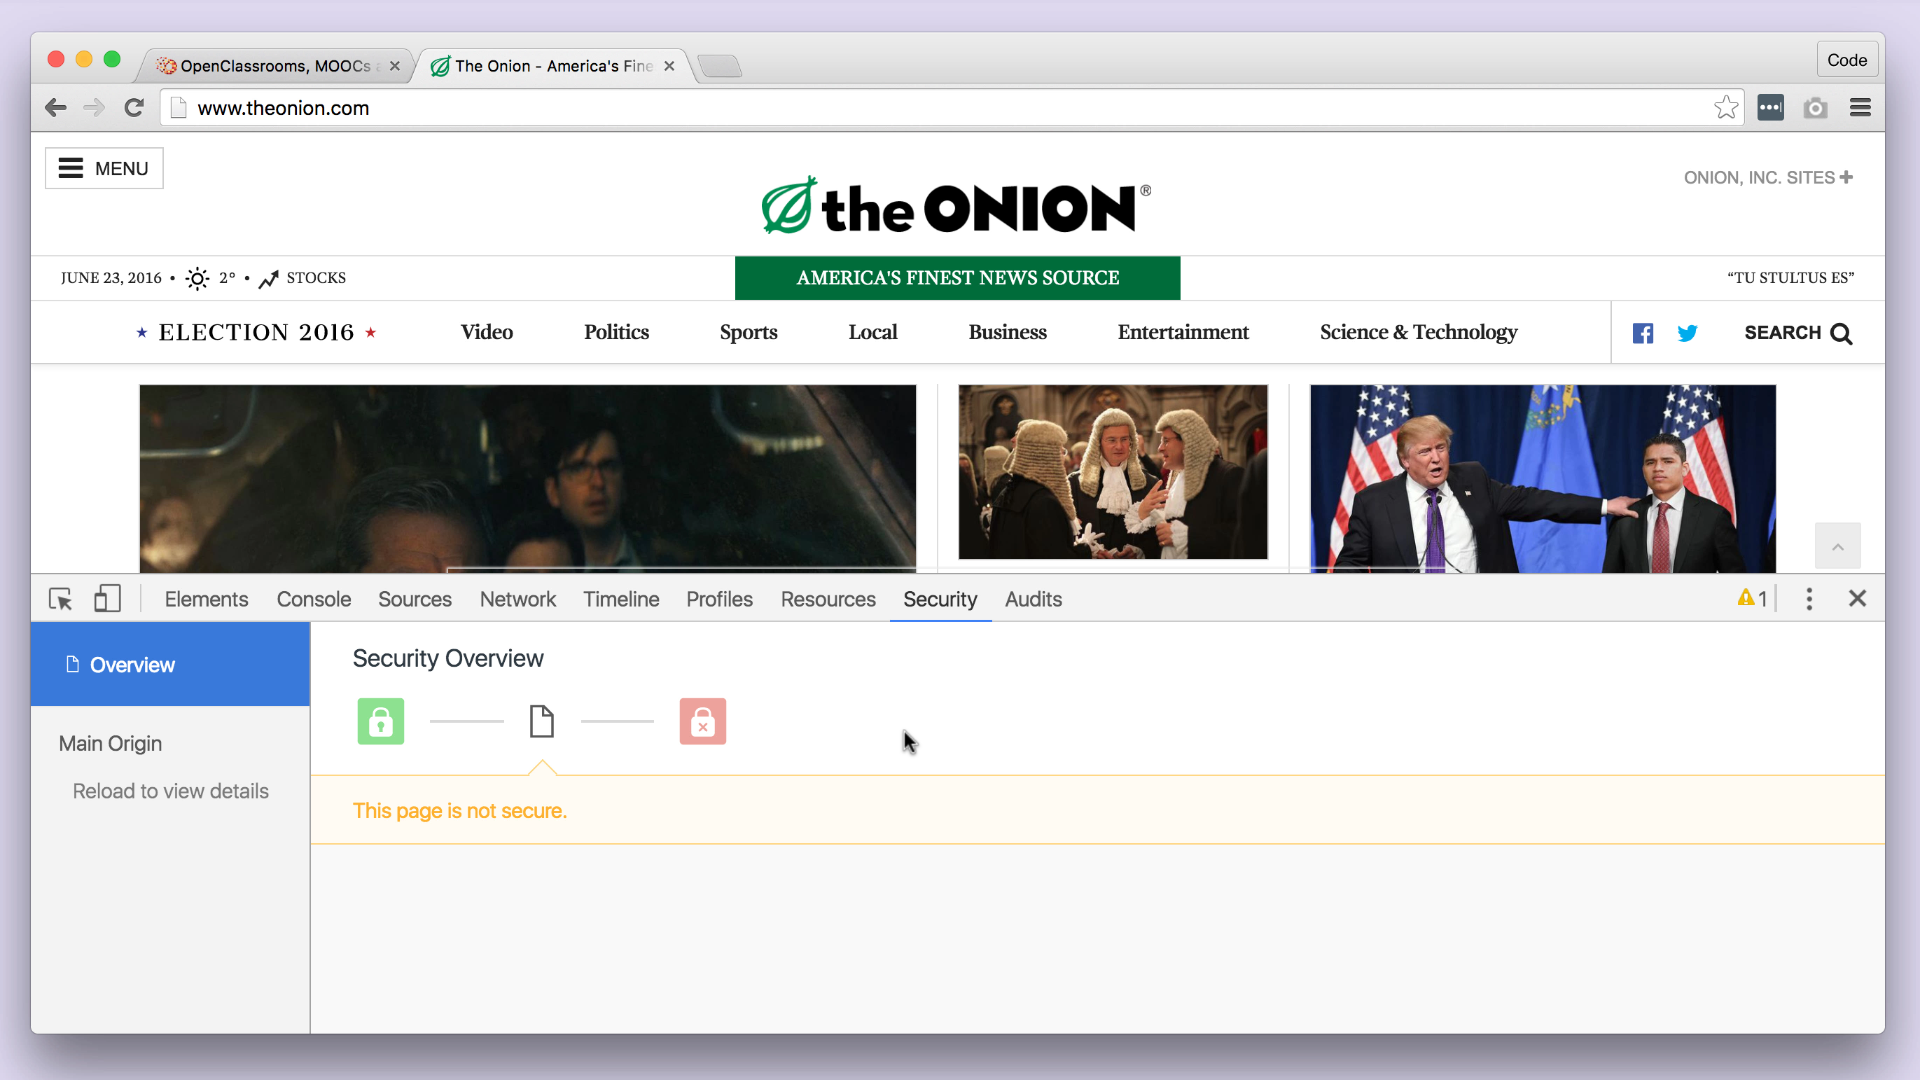 The Onion isn't secure but may not need to be